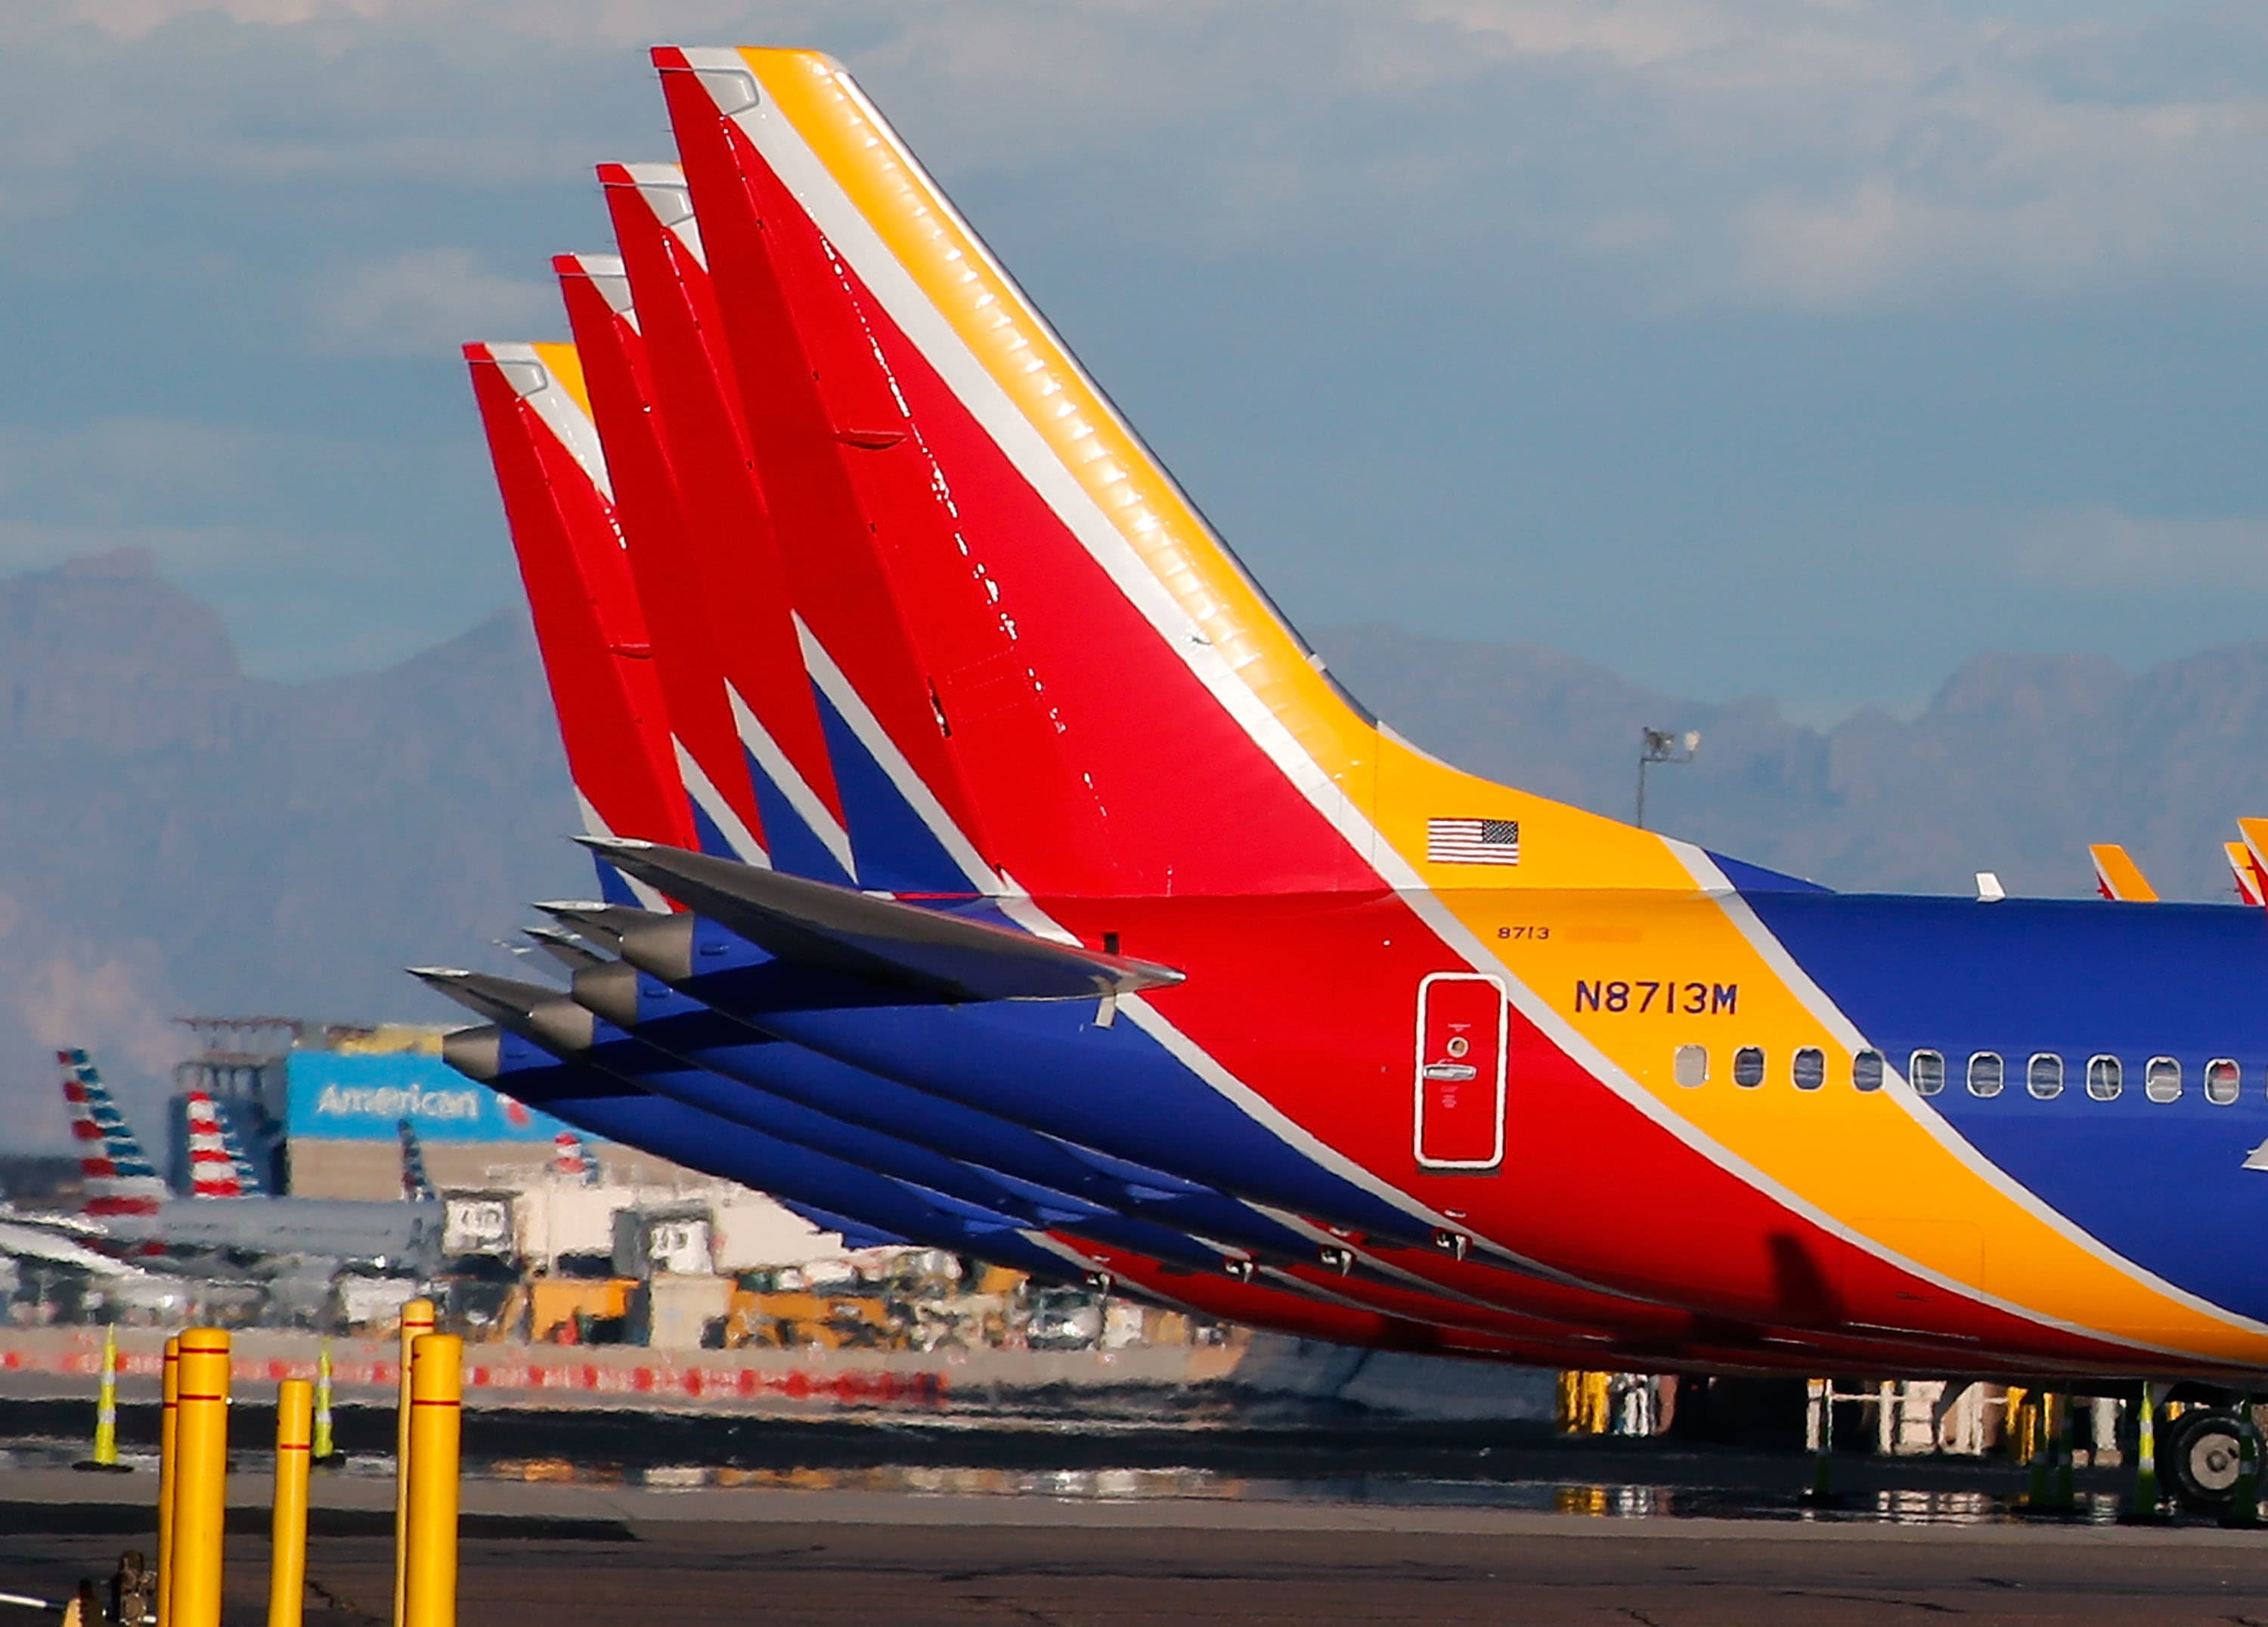 Airlines warn of flight cancellations as Boeing readies 737 Max software fix